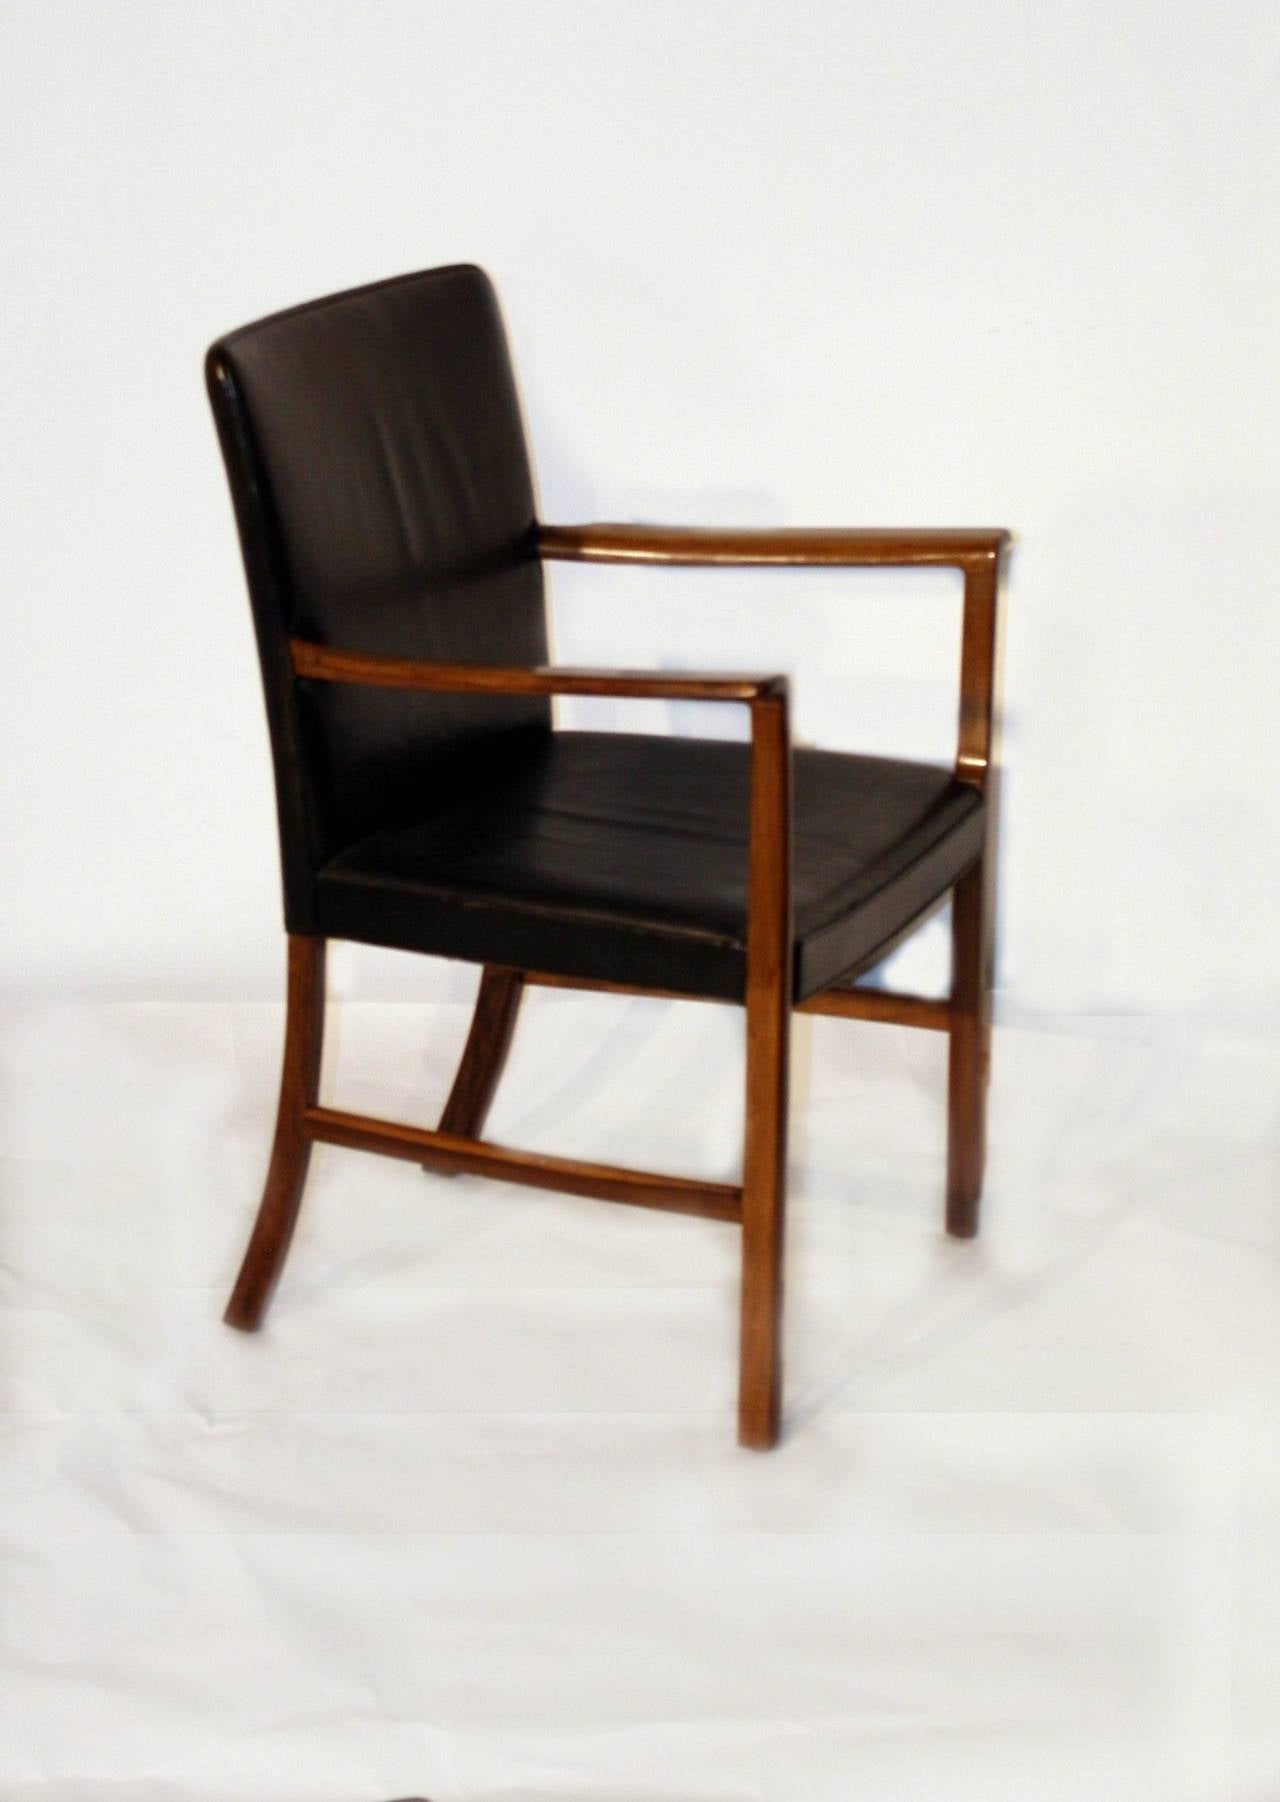 Ole Wanscher Rosewood Desk Chair, circa 1950 For Sale at ...